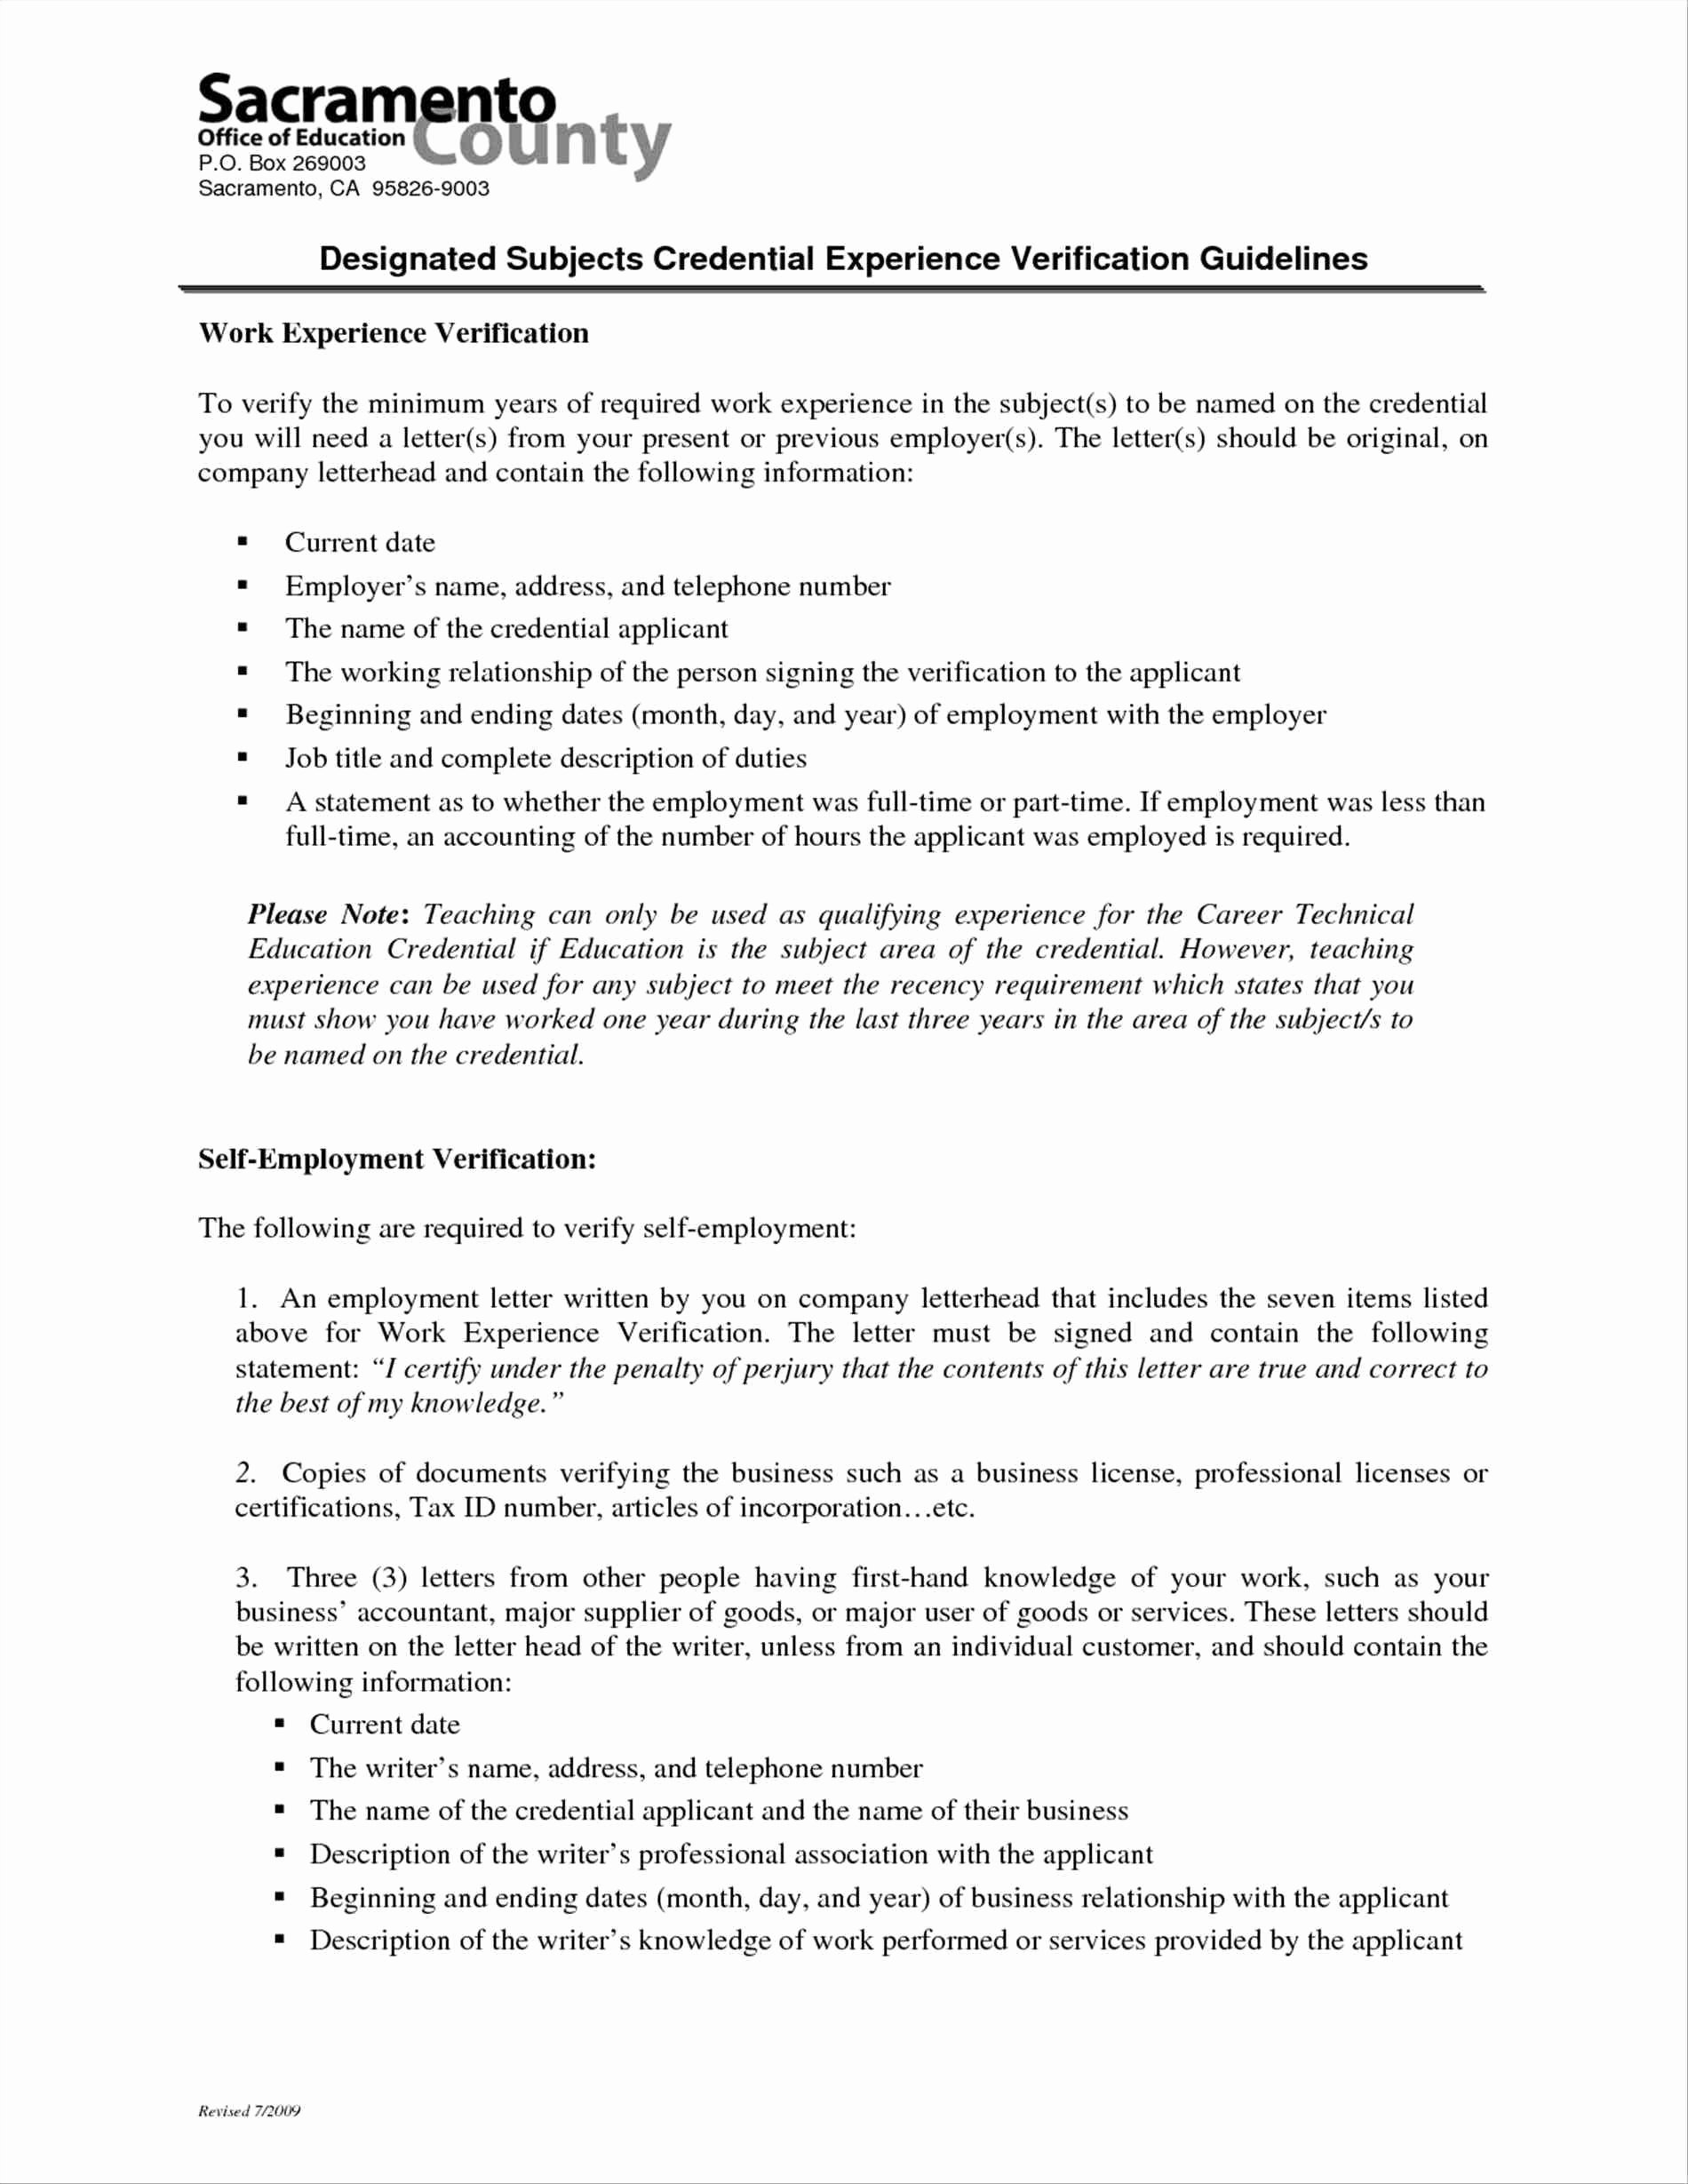 Self Employment Letter Template Fresh Cpa Letter for Self Employed Template Collection